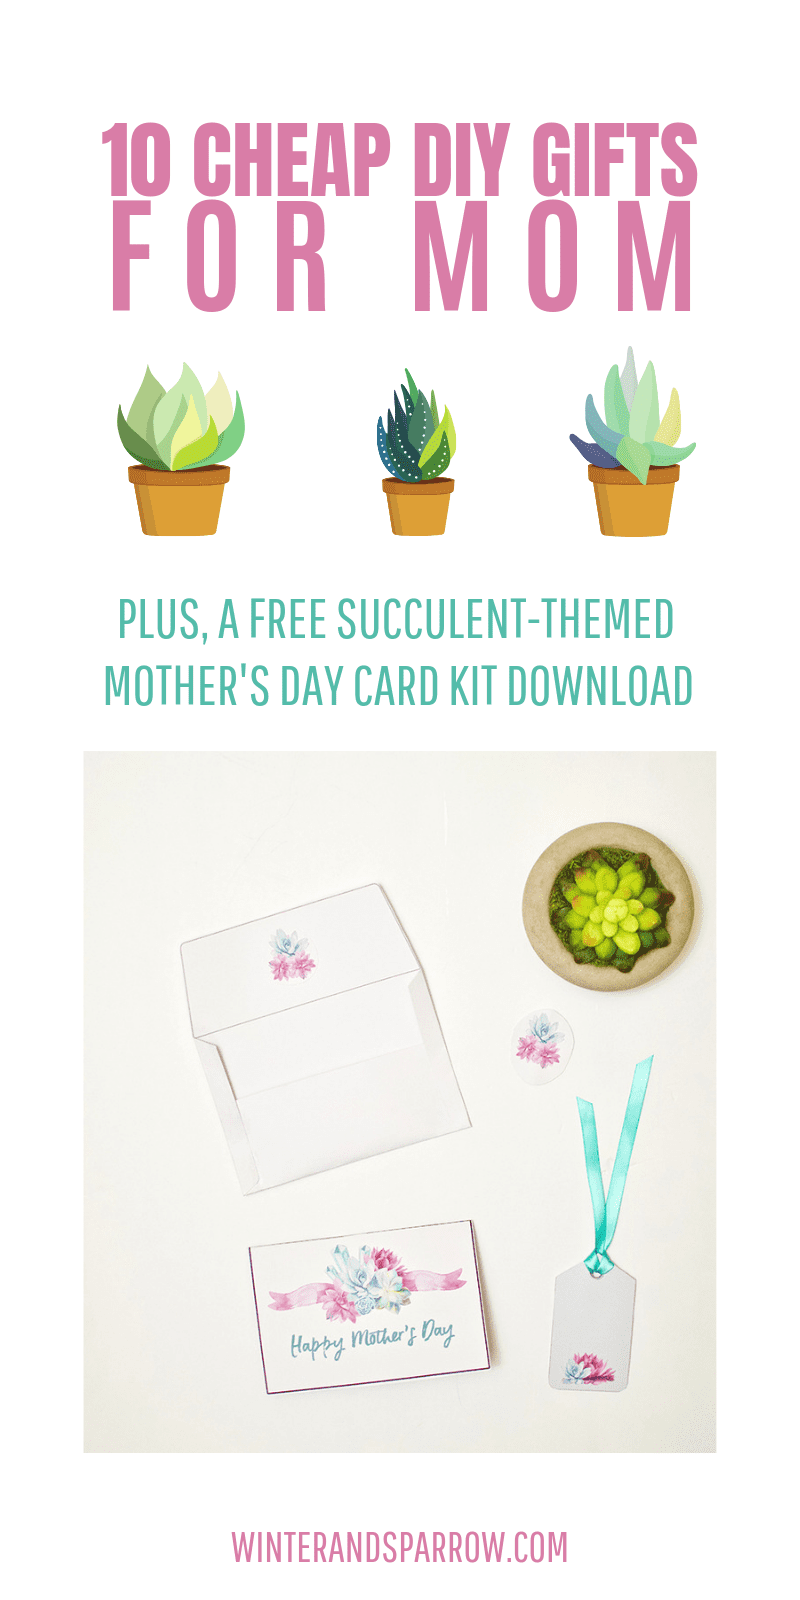 10 Cheap DIY Gifts For Mom Plus A Free Succulent-Themed Mother's Day Card Download | winterandsparrow.com #cheapdiygiftsformom #cheapgiftsformoms #mothersdaygiftideas